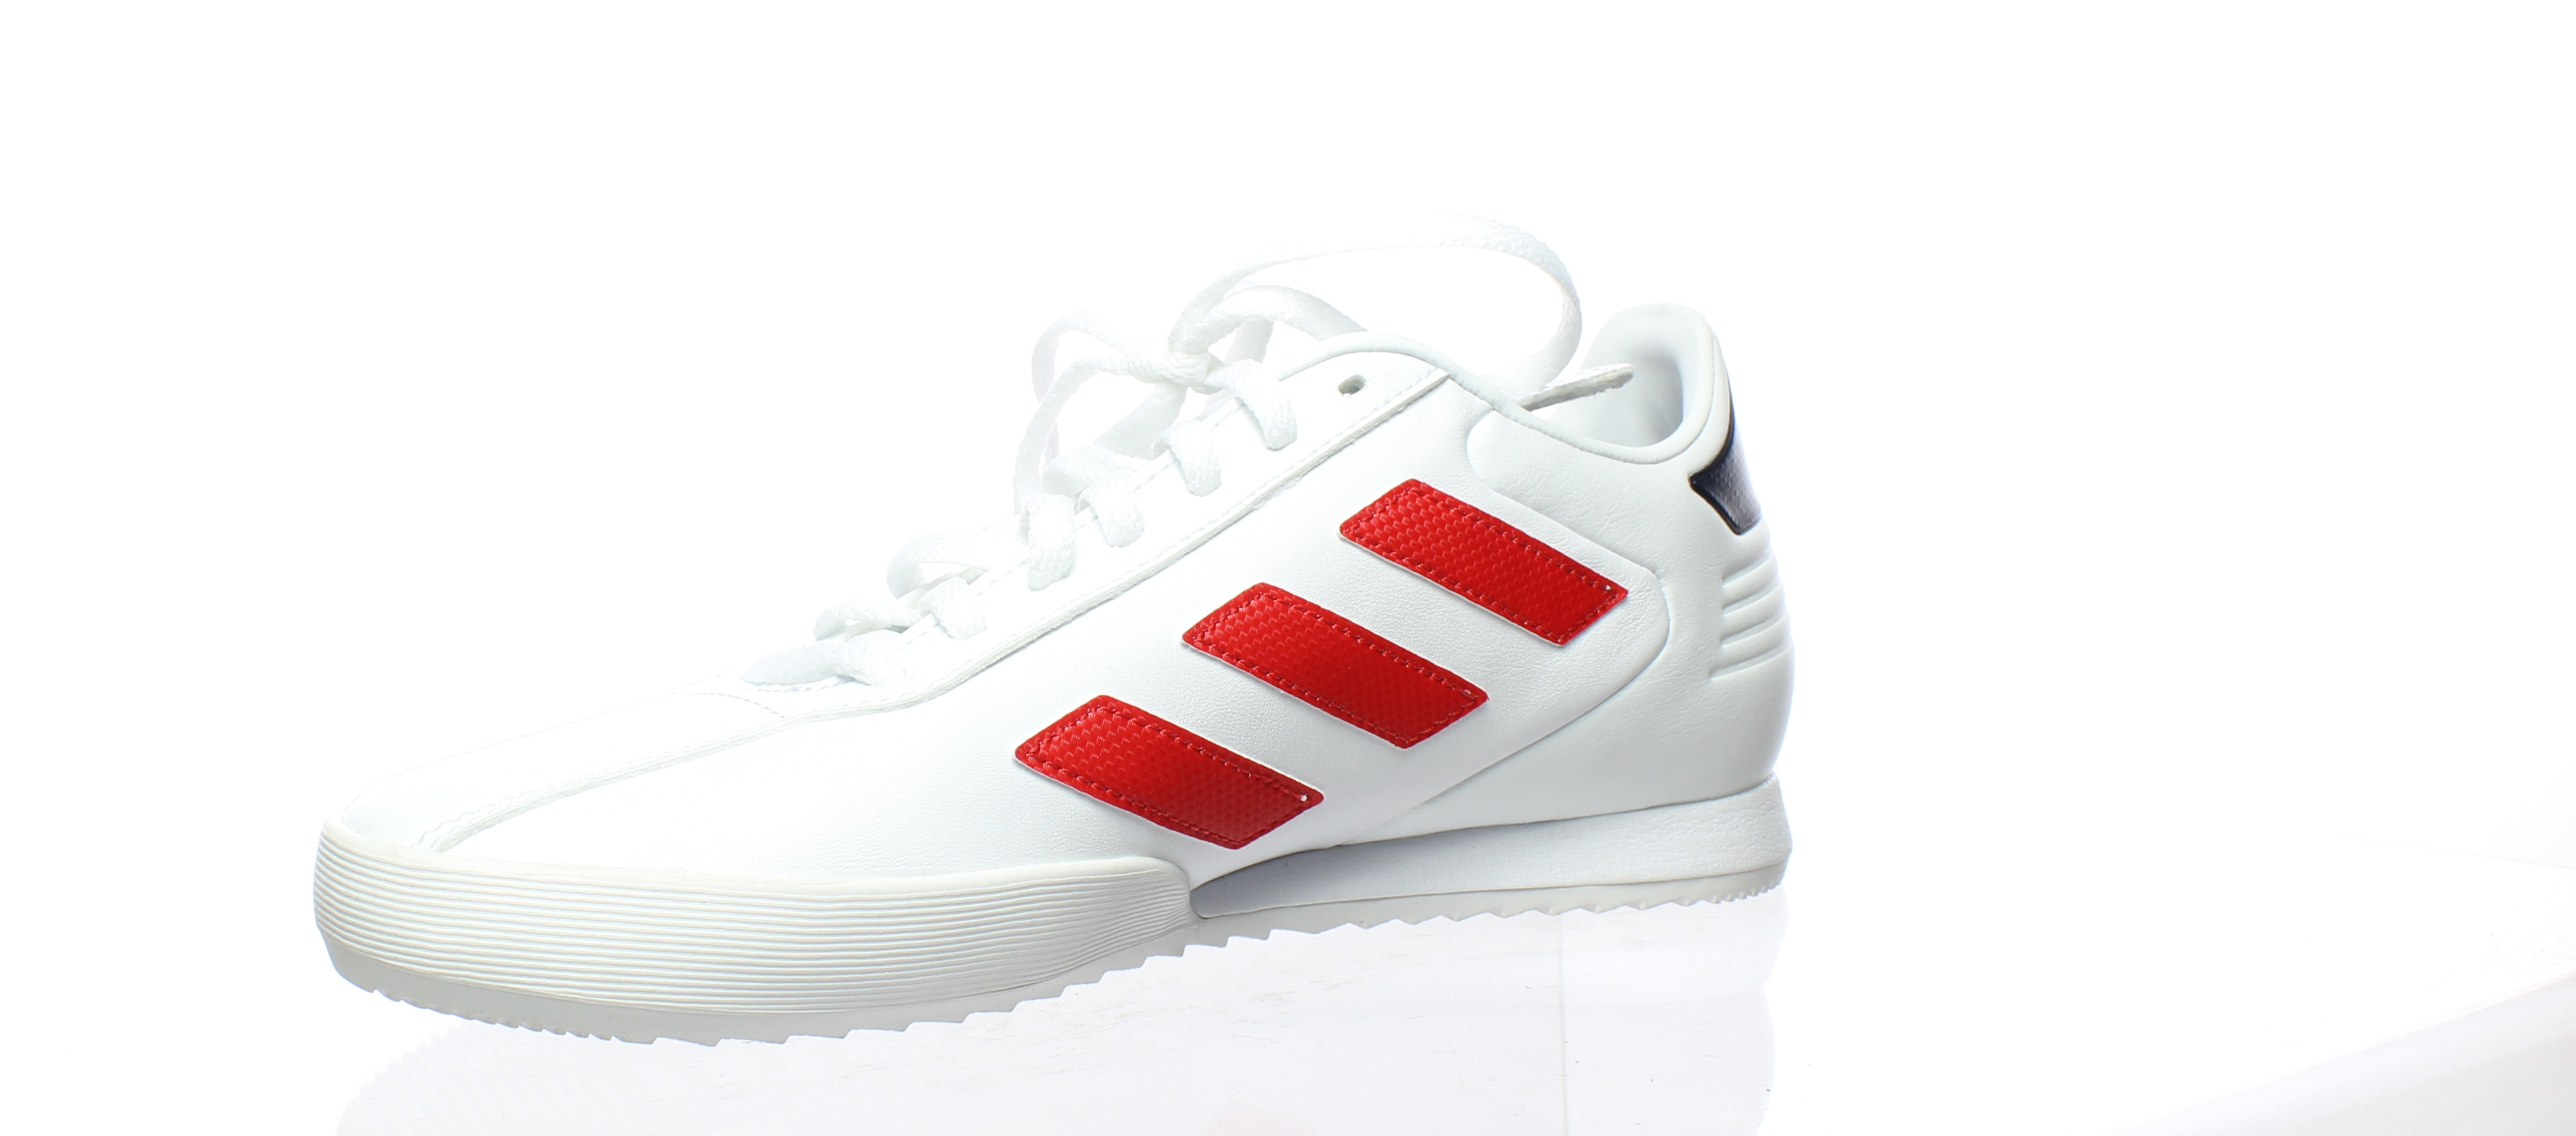 on sale 9fa2c 2052a Adidas WOMENS Copa Super White Size 8 (176196)